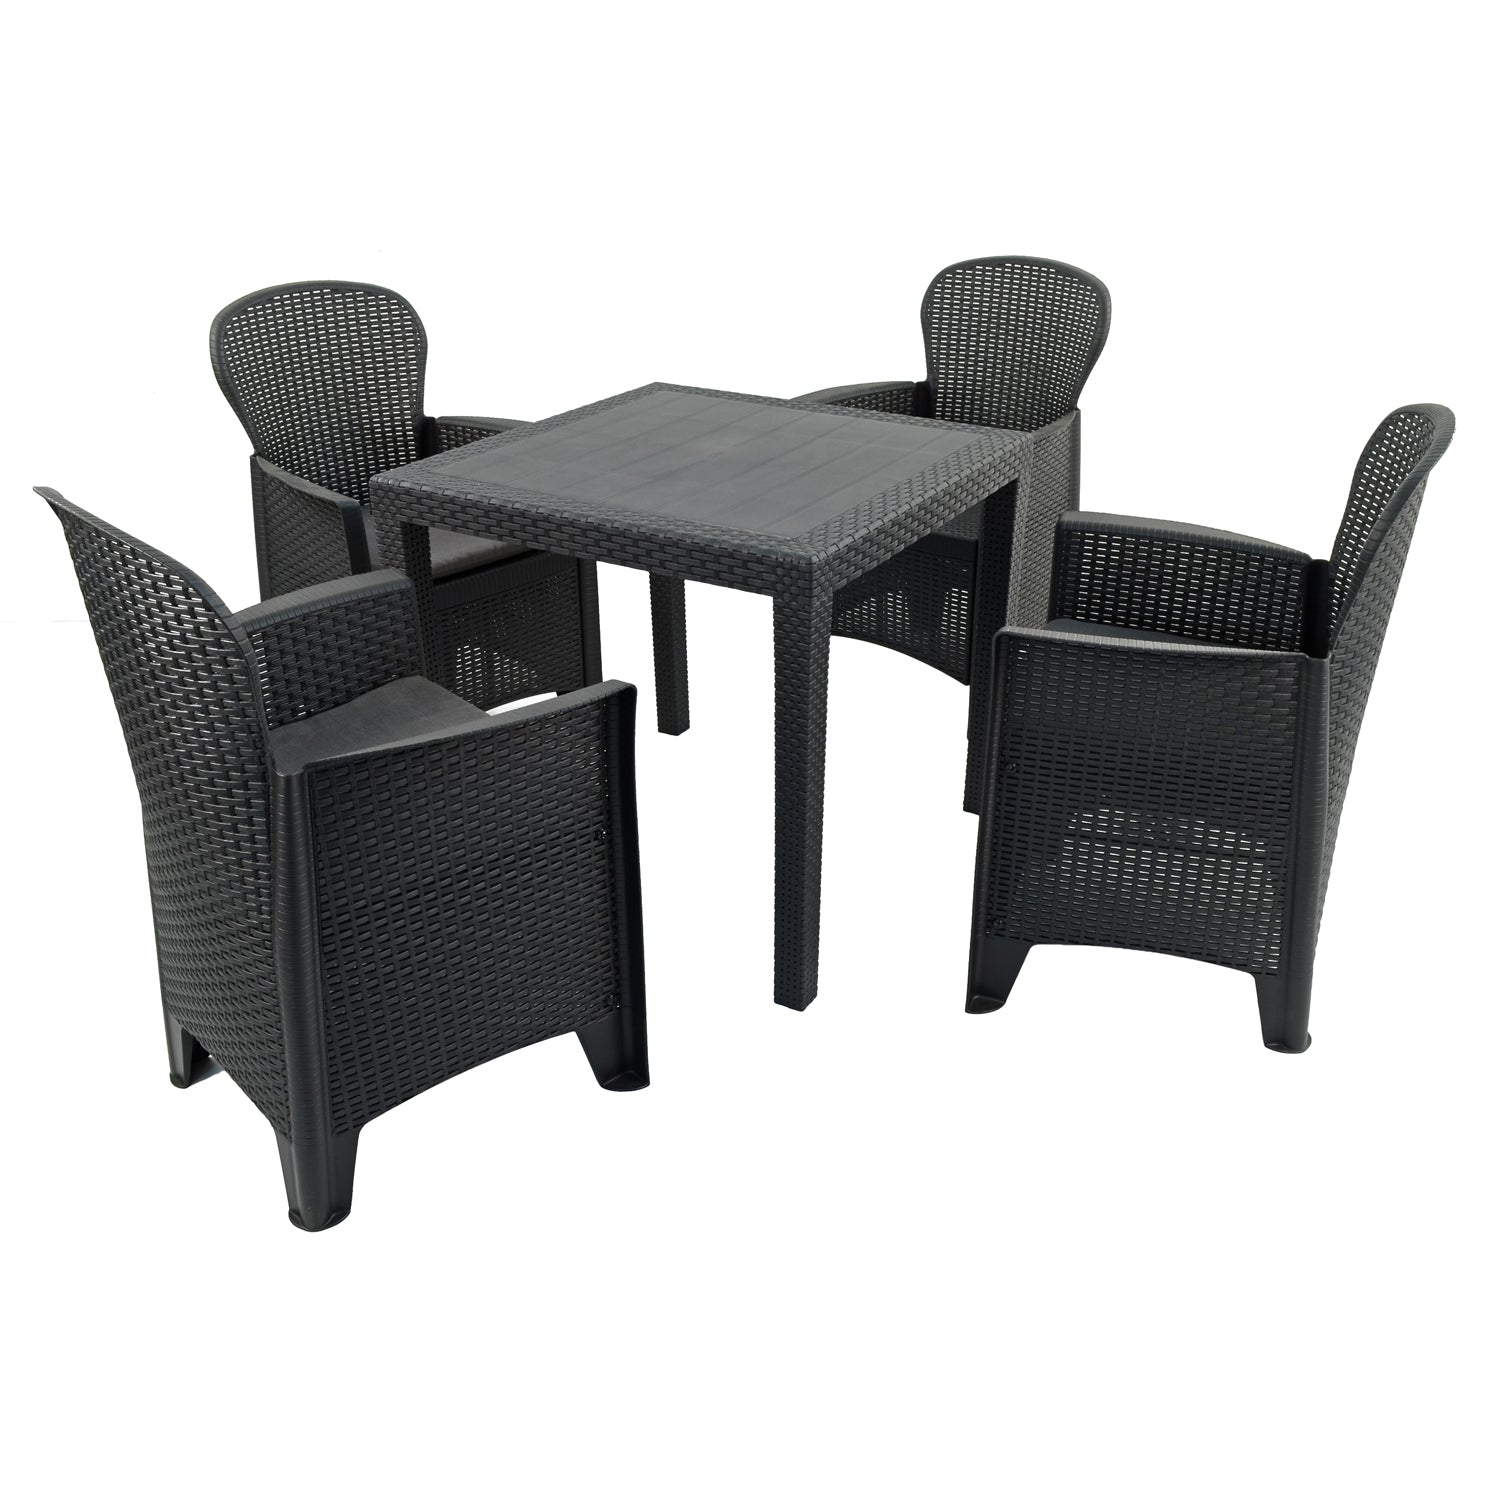 Trabella Salerno Square Table with 4 Sicily Chairs Garden Set Anthracite - Ruby's Garden Boutique